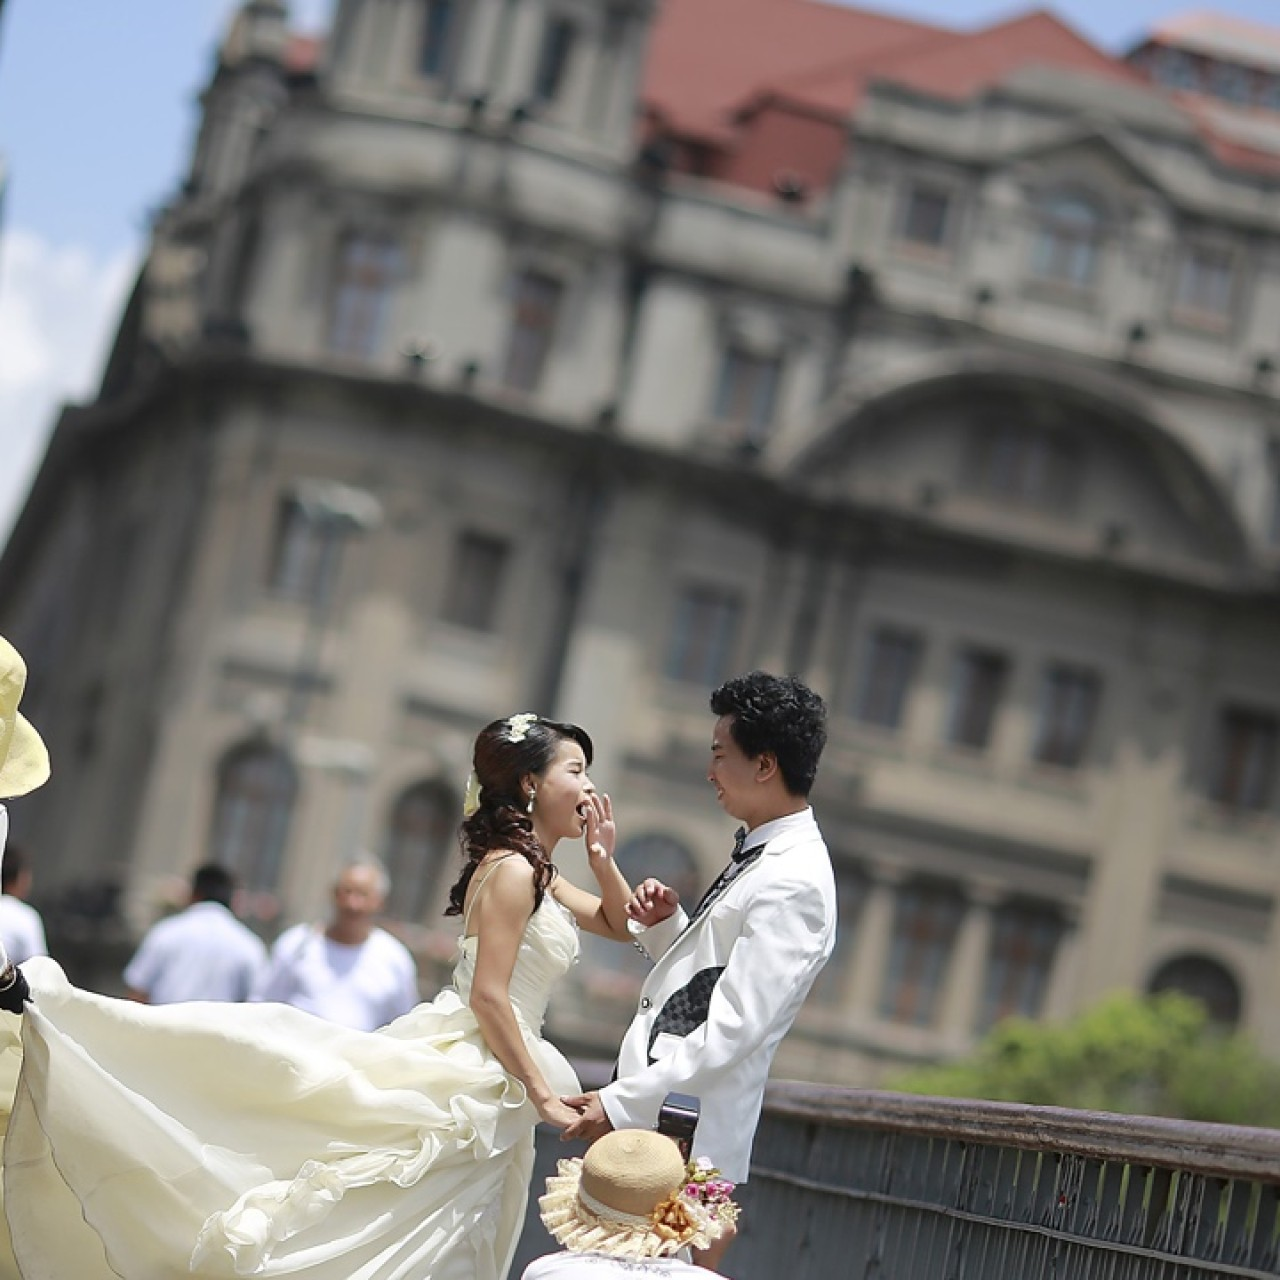 Fake grooms and brides for hire: Chinese Lunar New Year sees boom